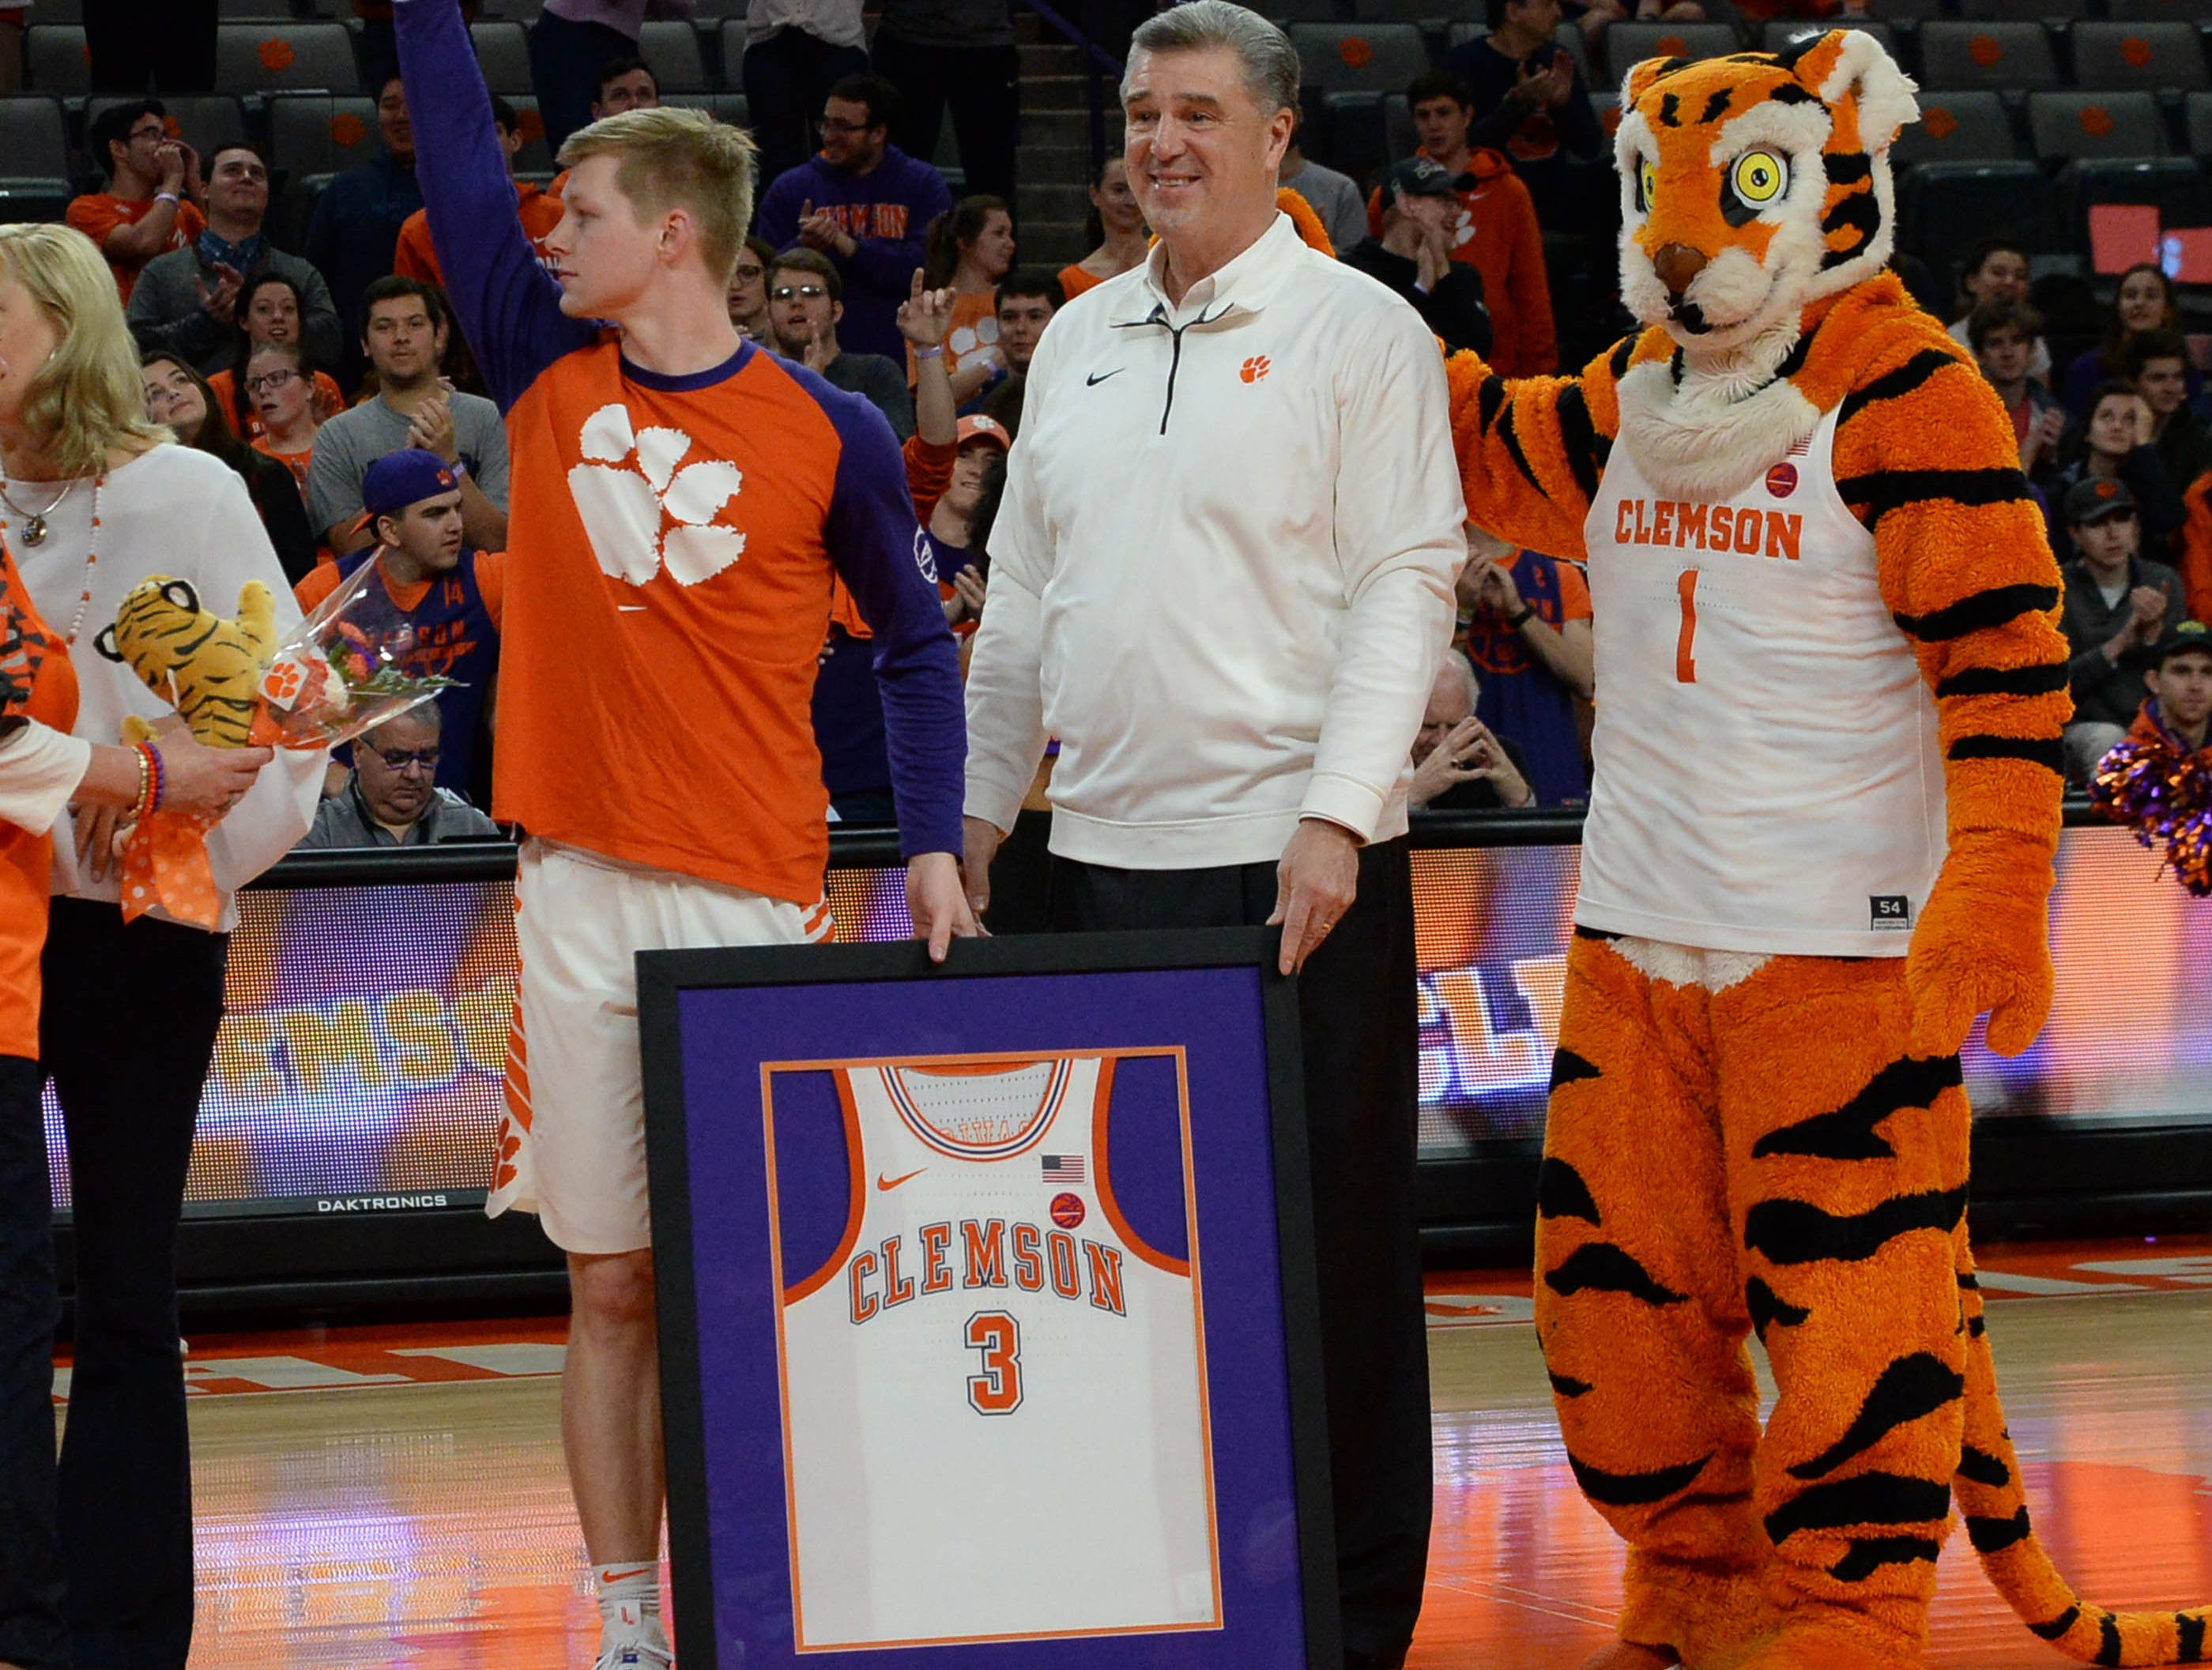 Clemson guard Lyles Davis (3) is honored on senior day before the game against Syracuse Saturday, March 9, 2019.